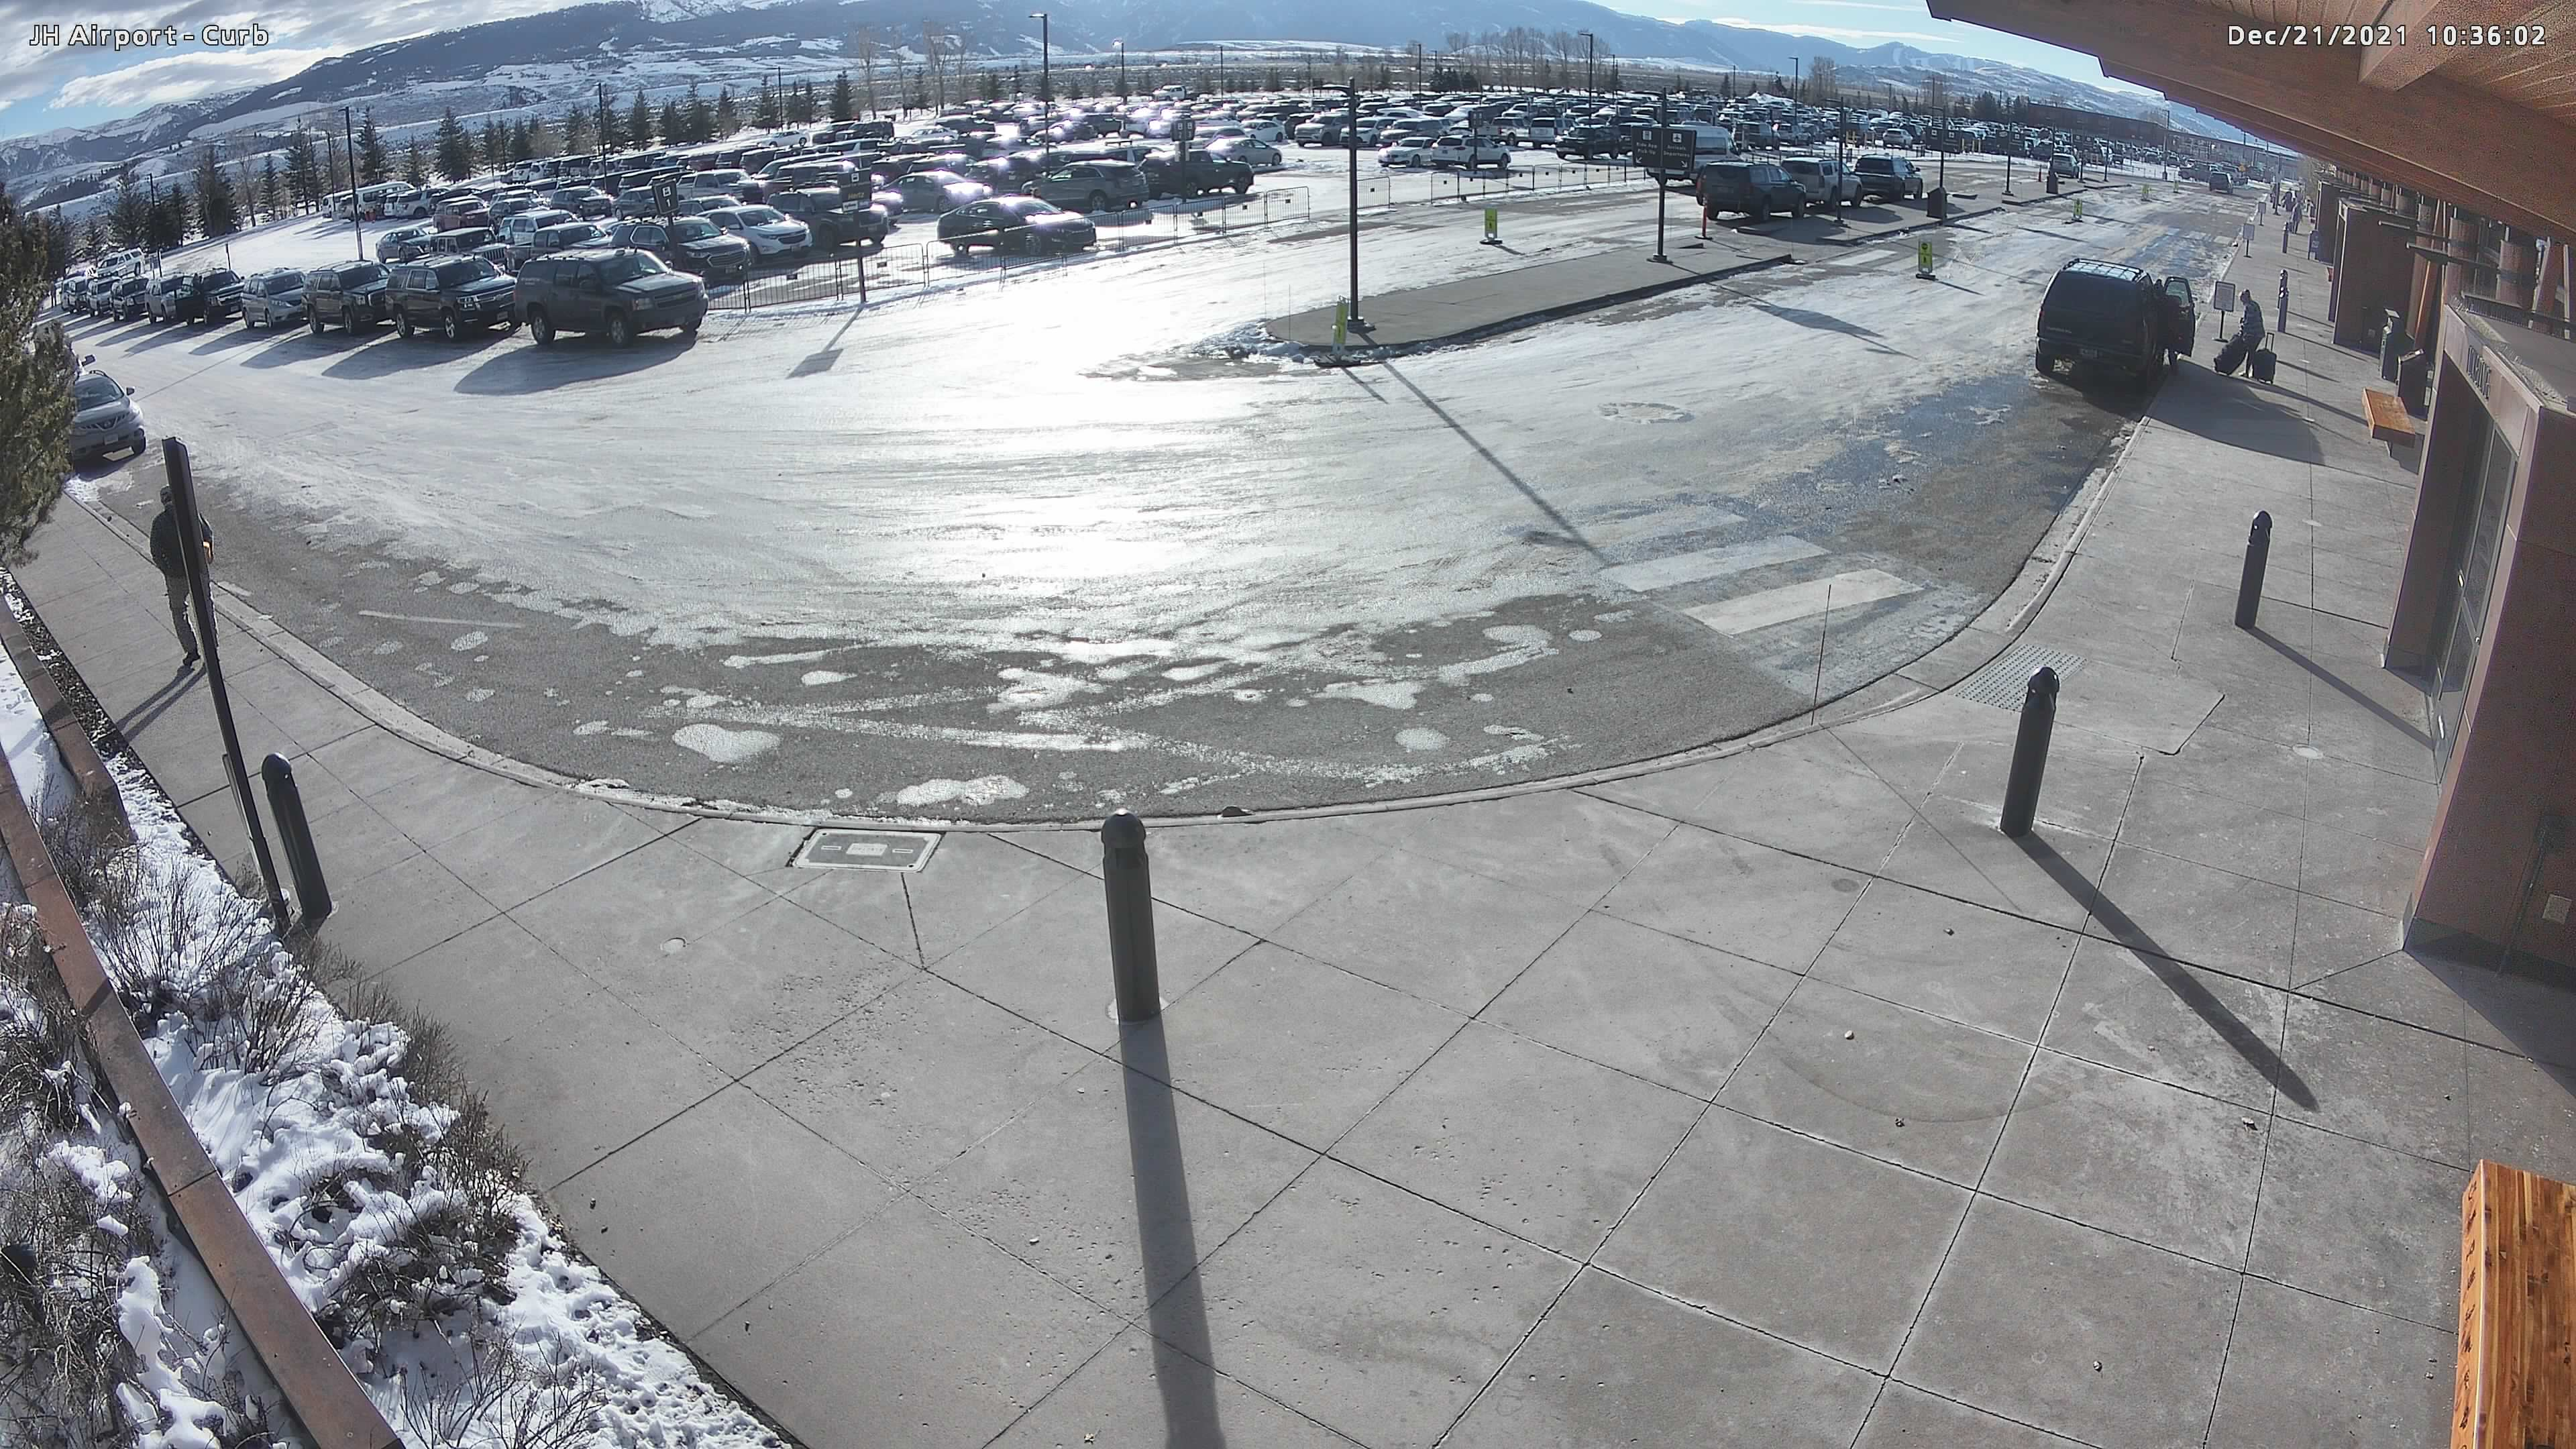 Jackson Hole Airport Webcam - Curb Pickup Area